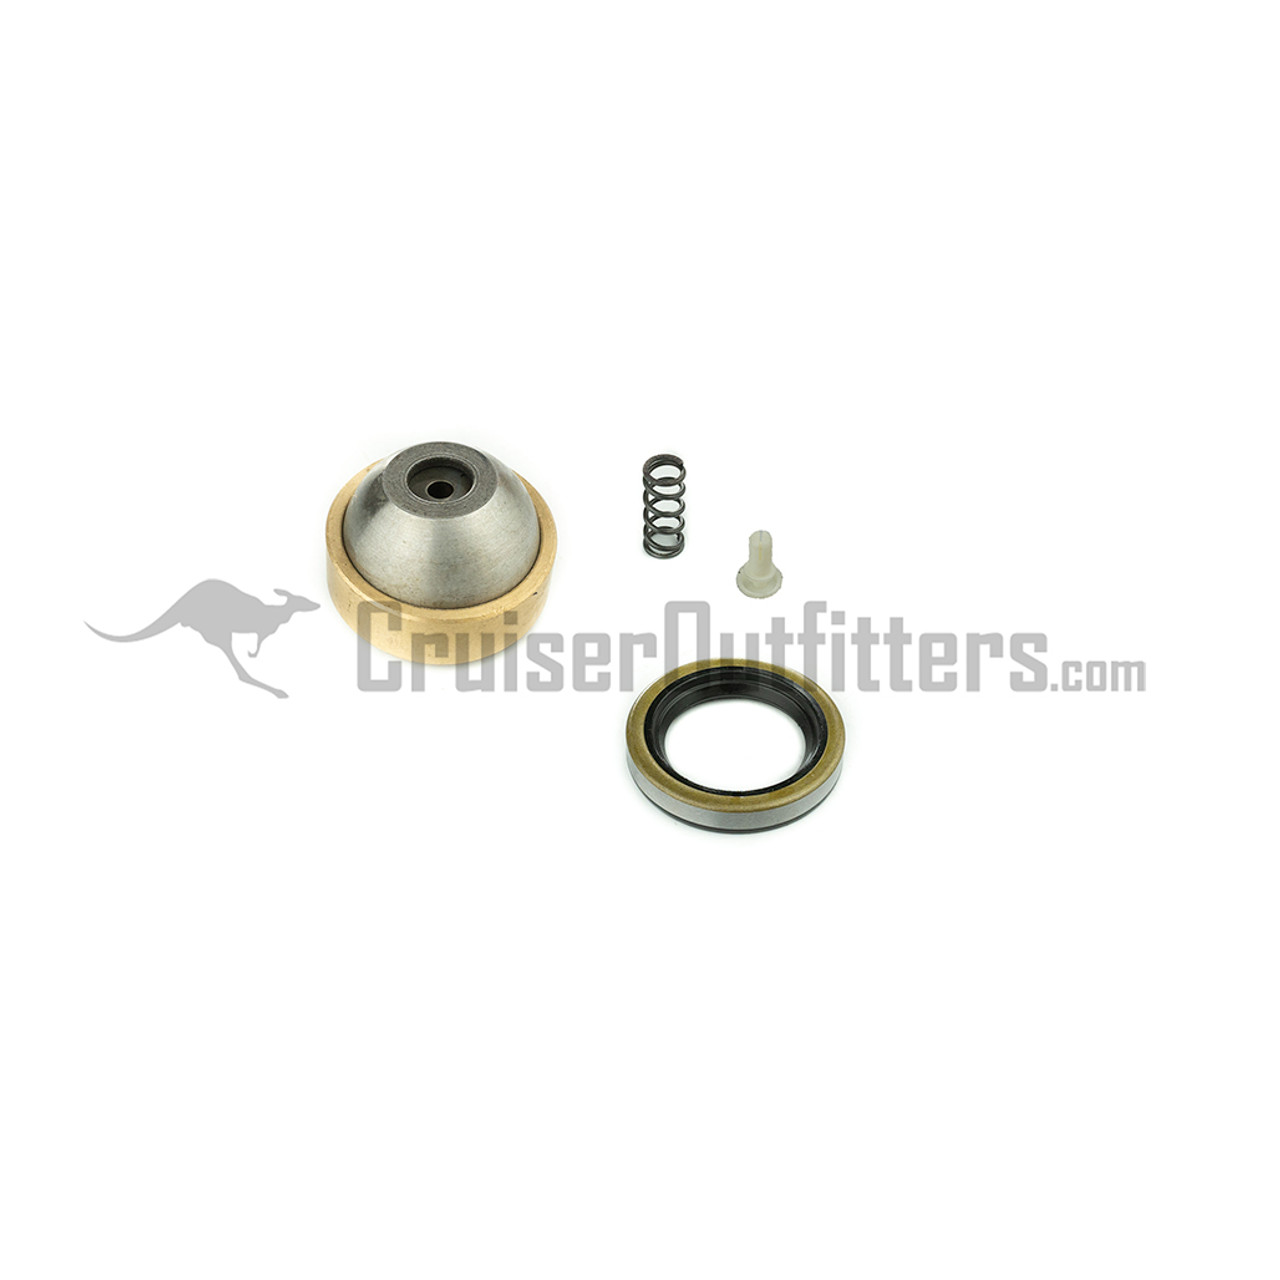 Universal Joint CV Ball Kit - Japanese - Fits LC/HiLux CV Shaft (1 Required per Shaft) (UJCVBALL)